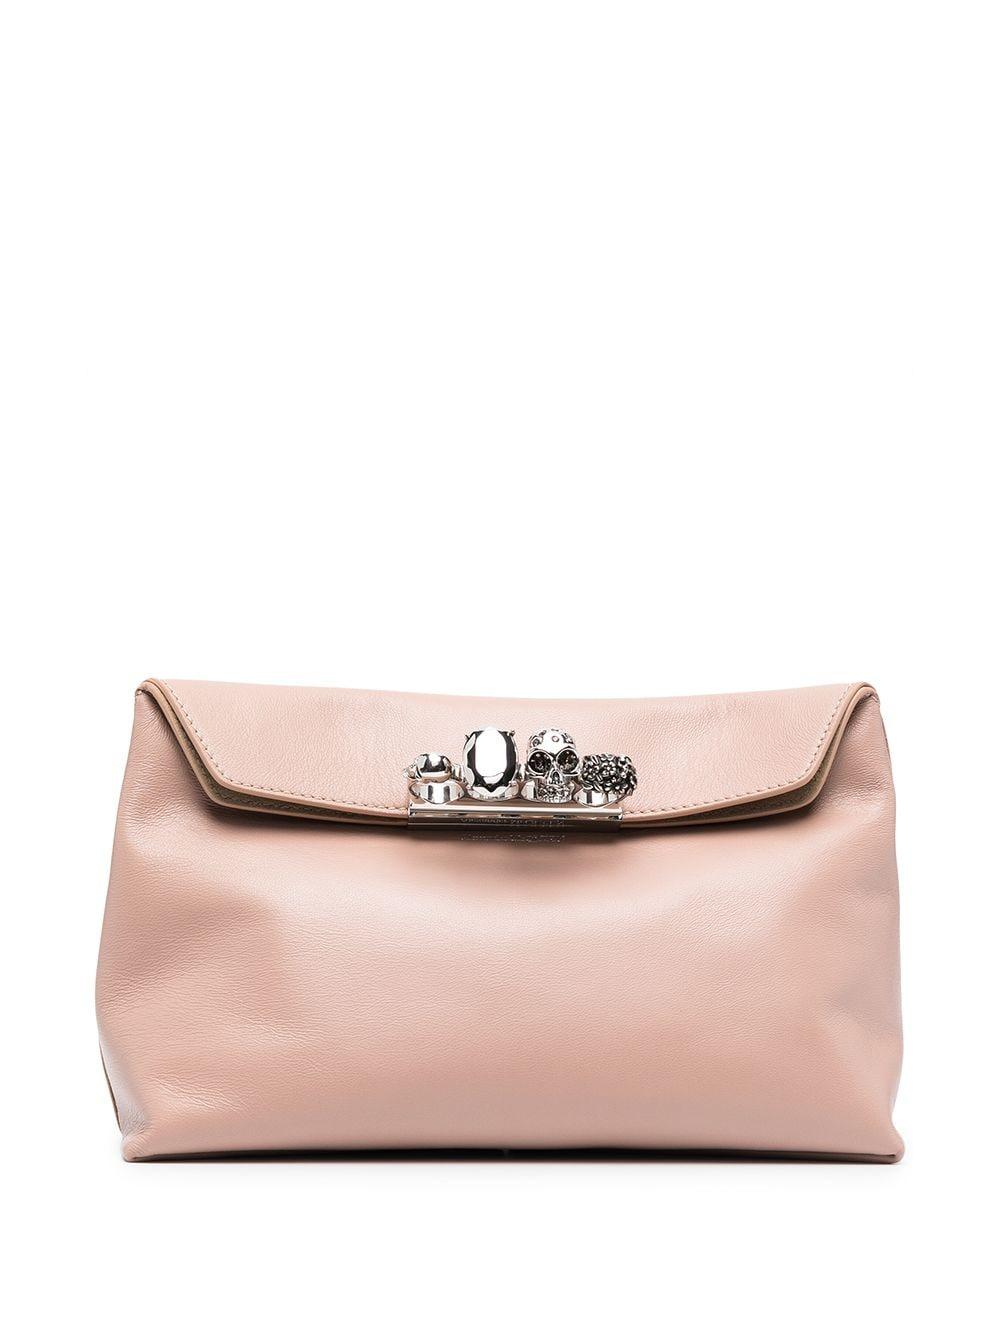 Four Ring Soft Pouch Item # 631864CSRRY